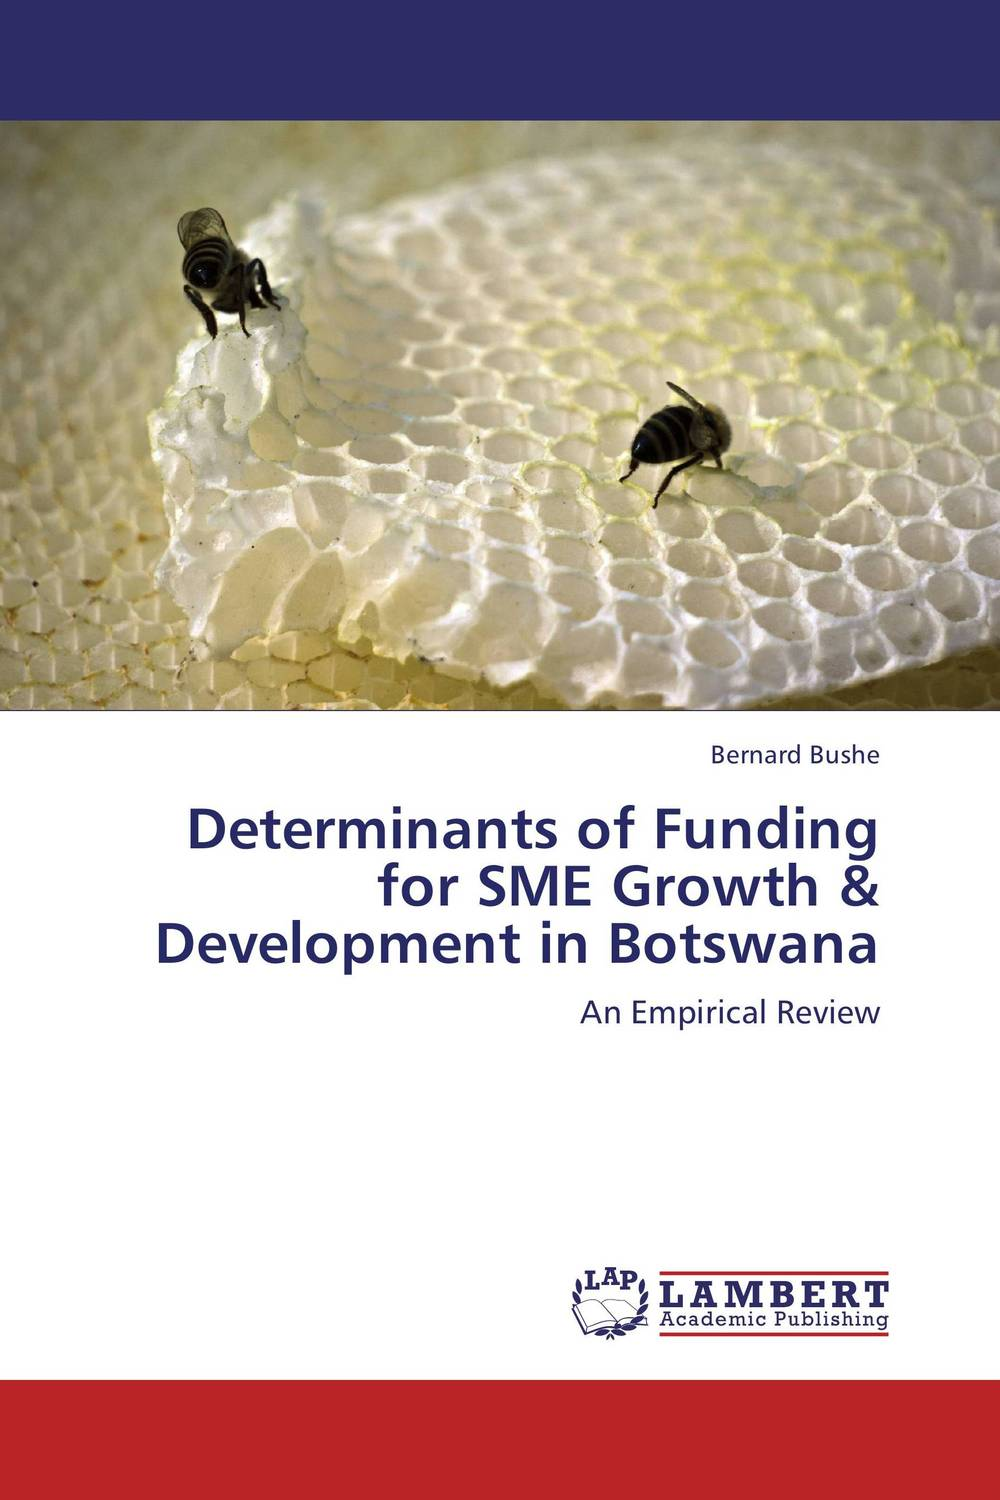 Determinants of Funding for SME Growth & Development in Botswana rakesh kumar emerging role of civil society in development of botswana